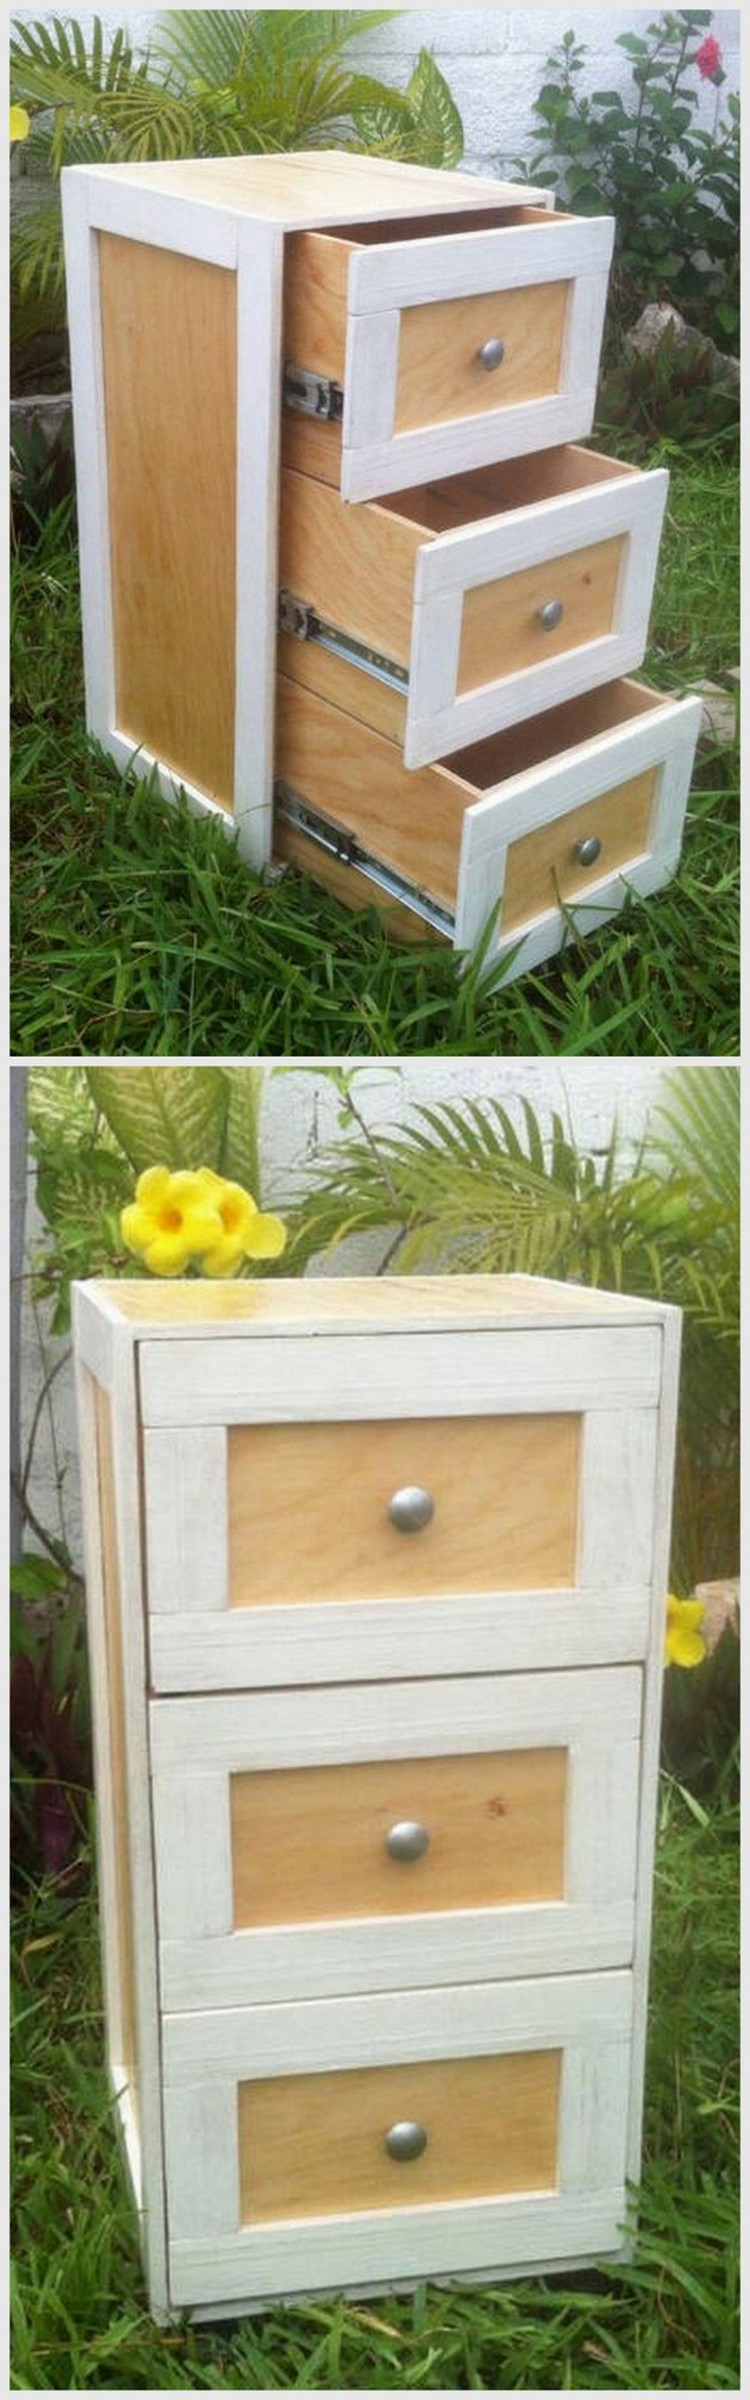 Pallet Chest with Drawers